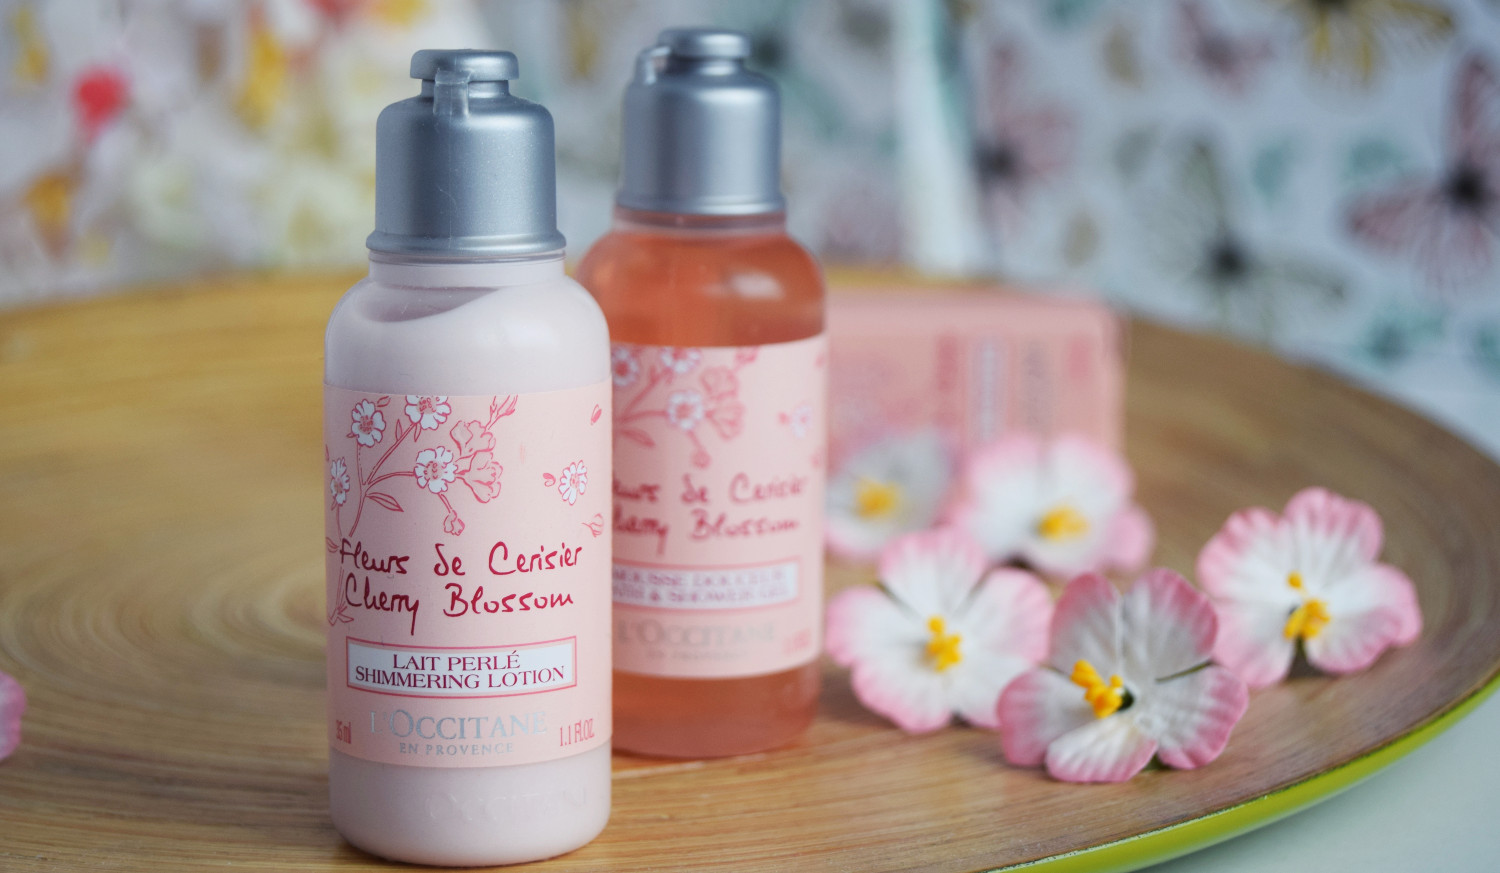 Cherry_blossom_L'Occitane_Zalabell_beauty_8